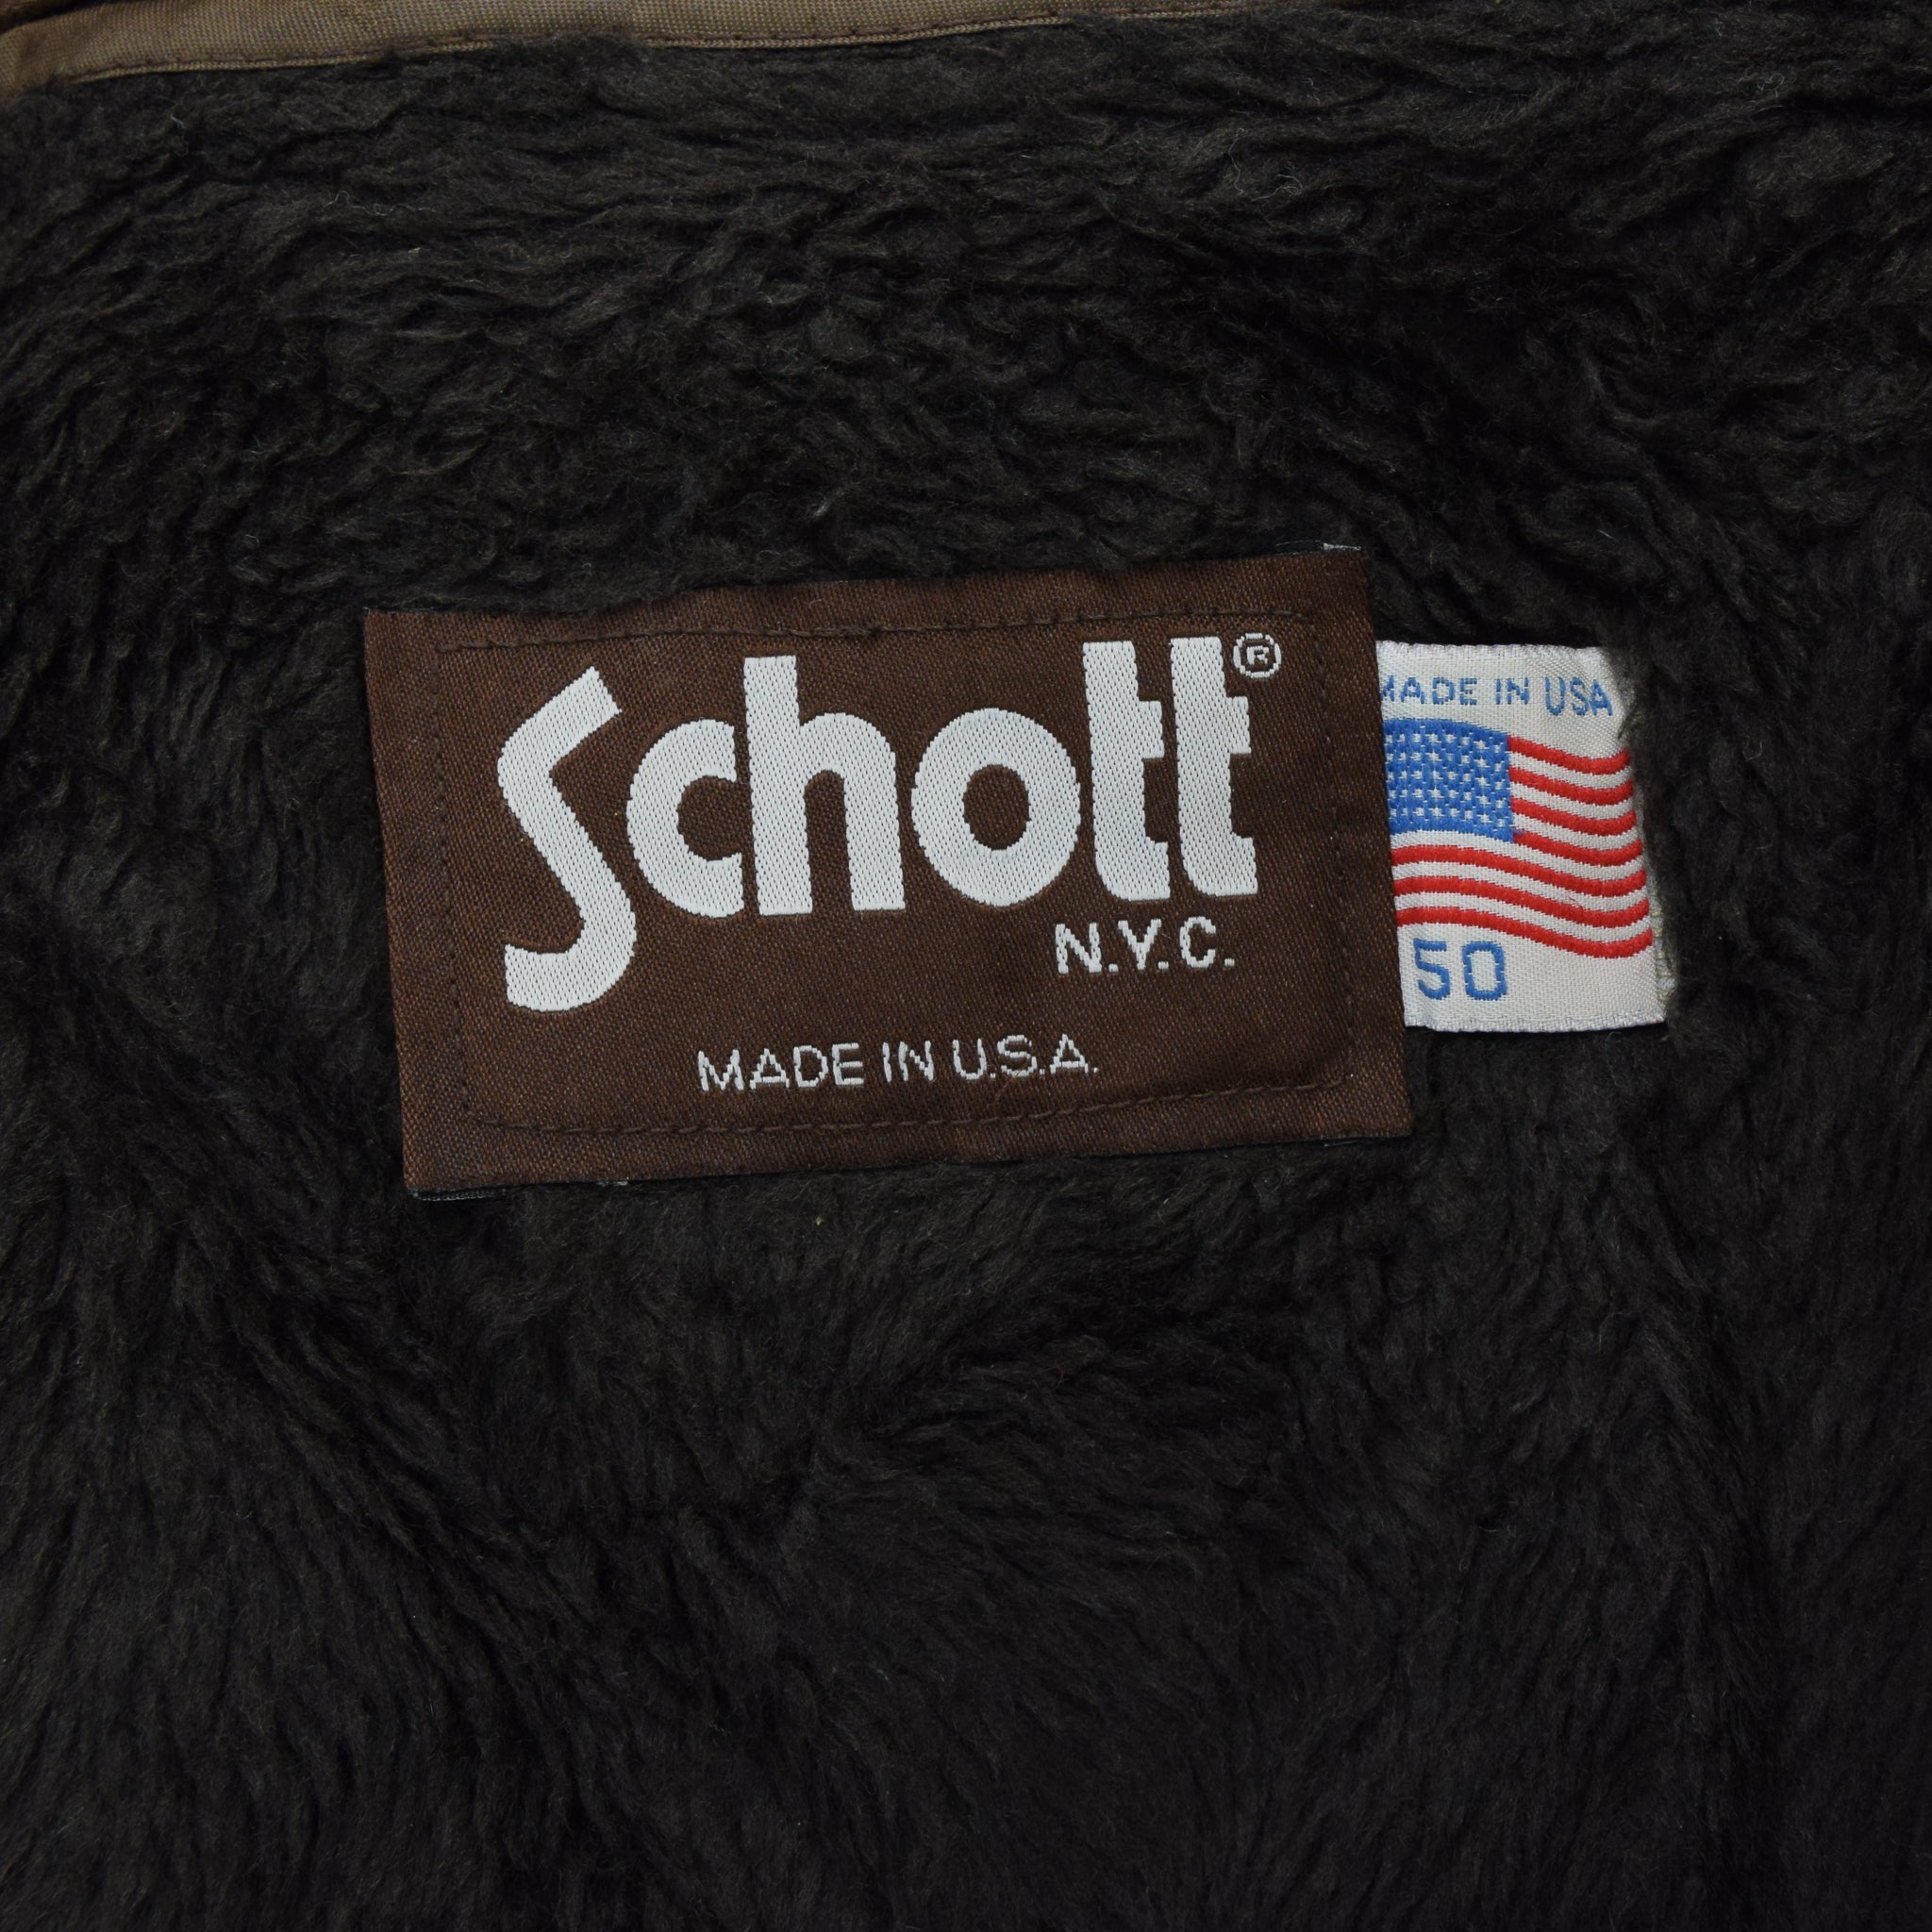 Vintage Schott A-2 Brown Cowhide Leather Flight Bomber Jacket Made in USA XXL label